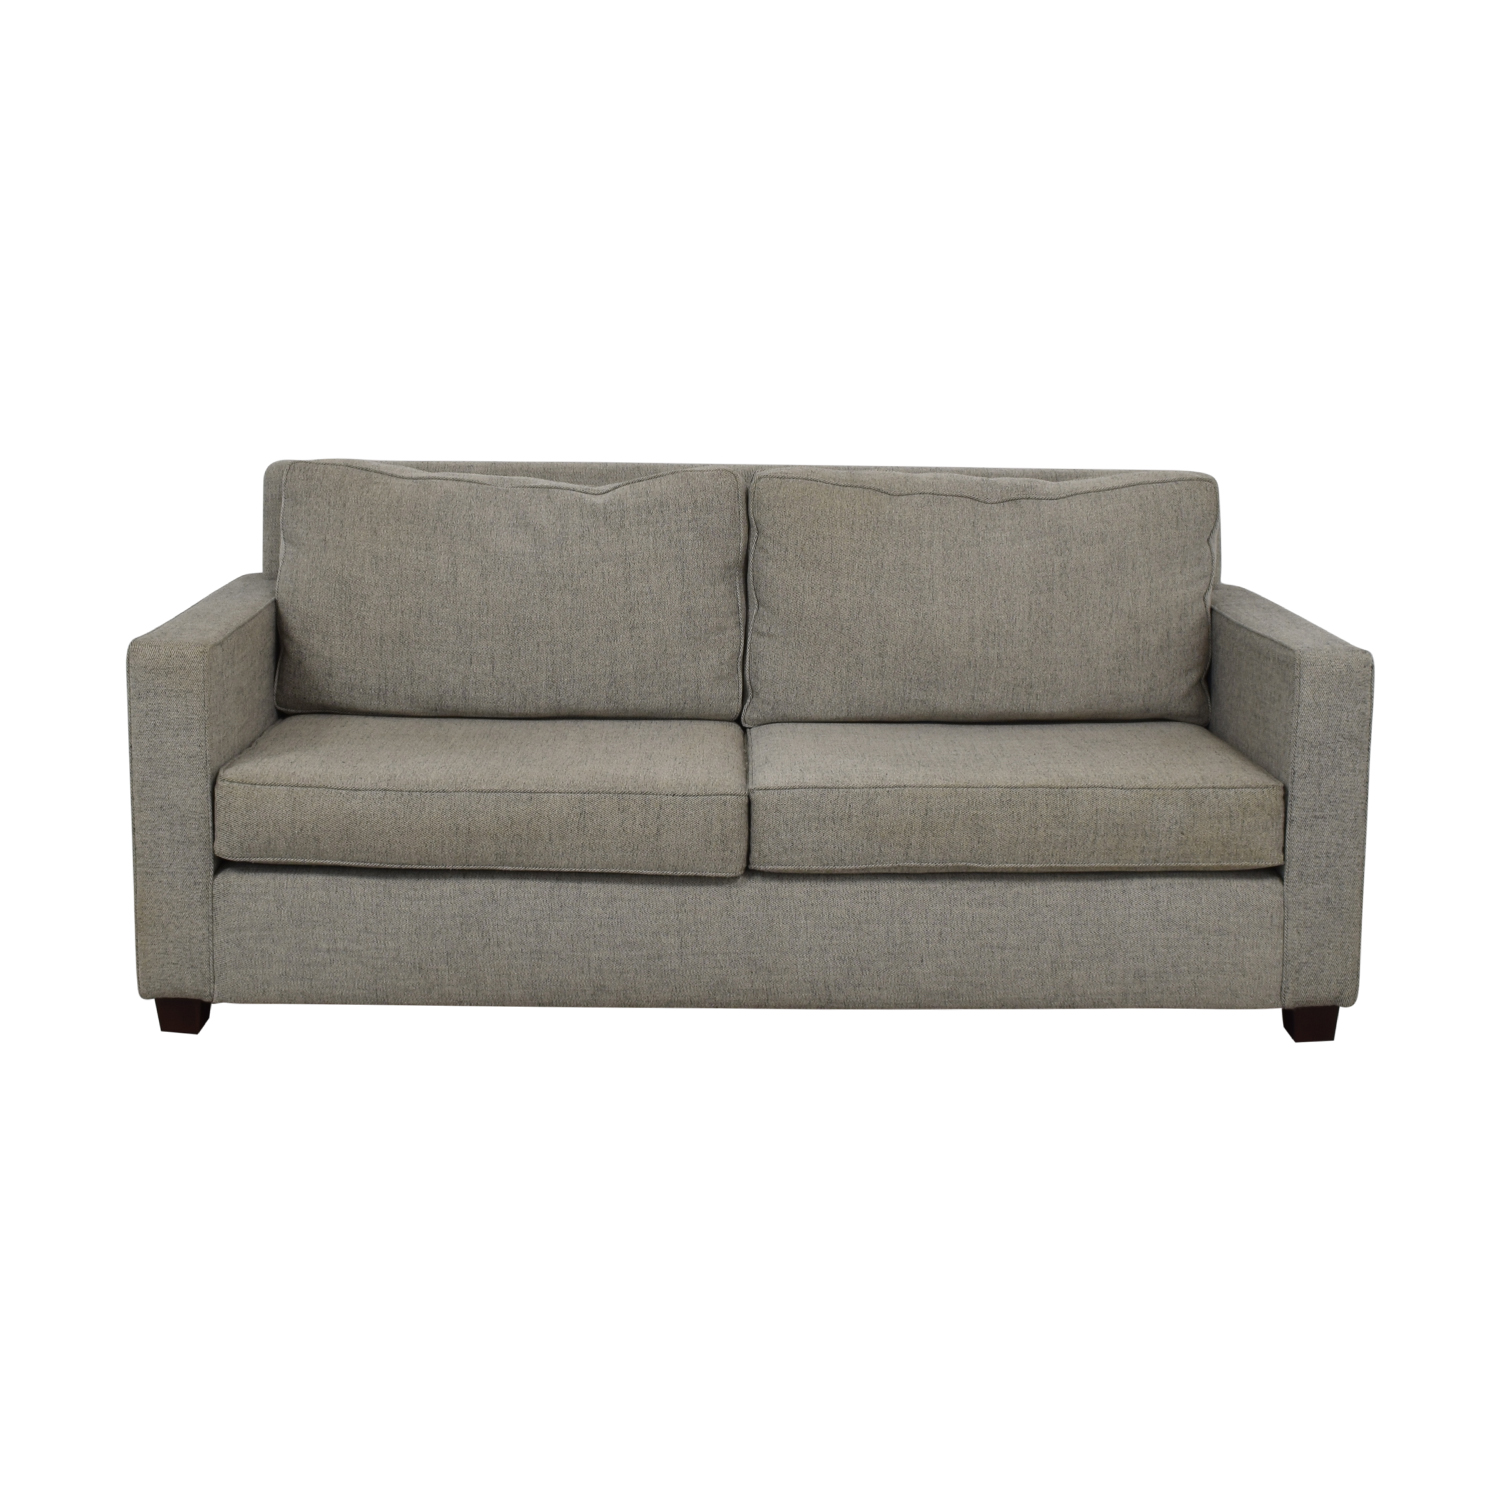 West Elm West Elm Henry Gray Two-Cushion Sofa coupon